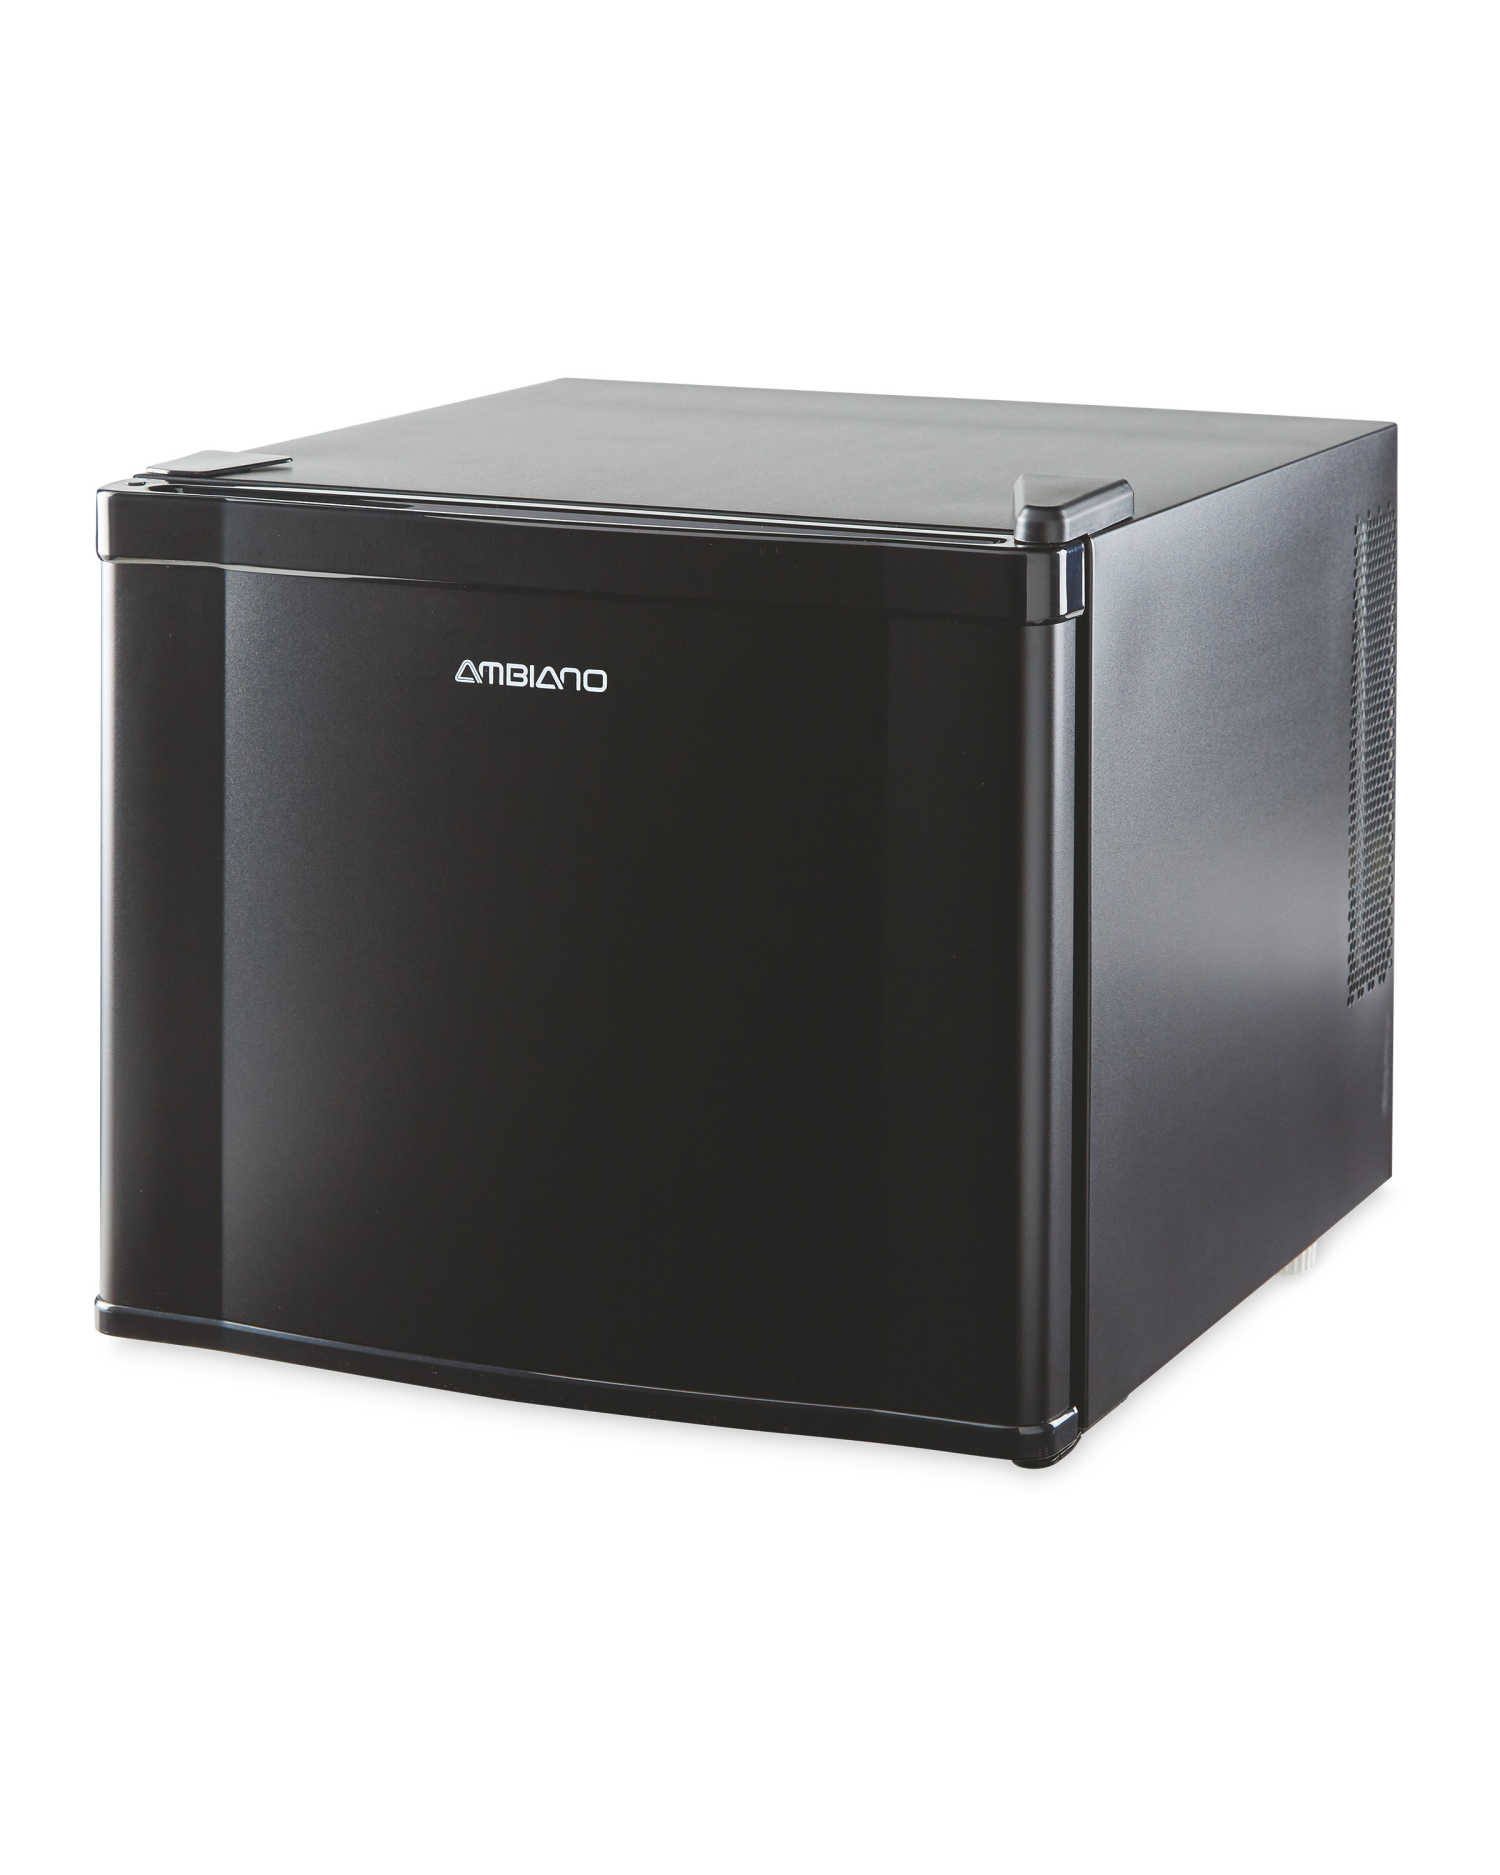 ...when you can get the Ambiano fridge at Aldi for just £59.99